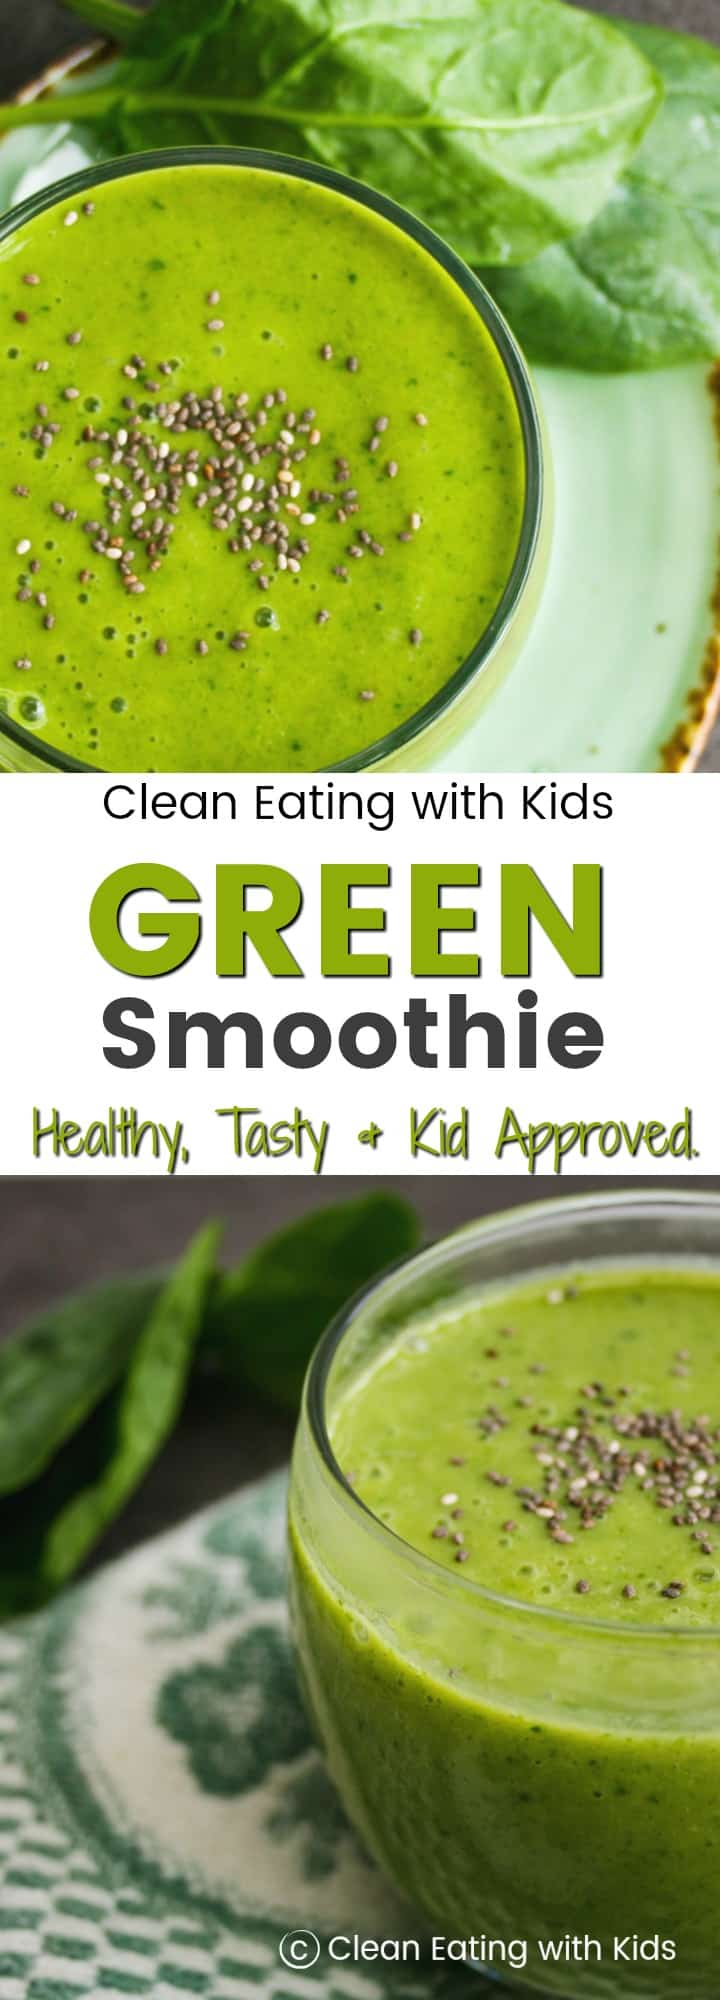 A Green Smoothie that the kids will actually drink! #greensmoothie #vegan #cleaneating #cleaneatingwithkids